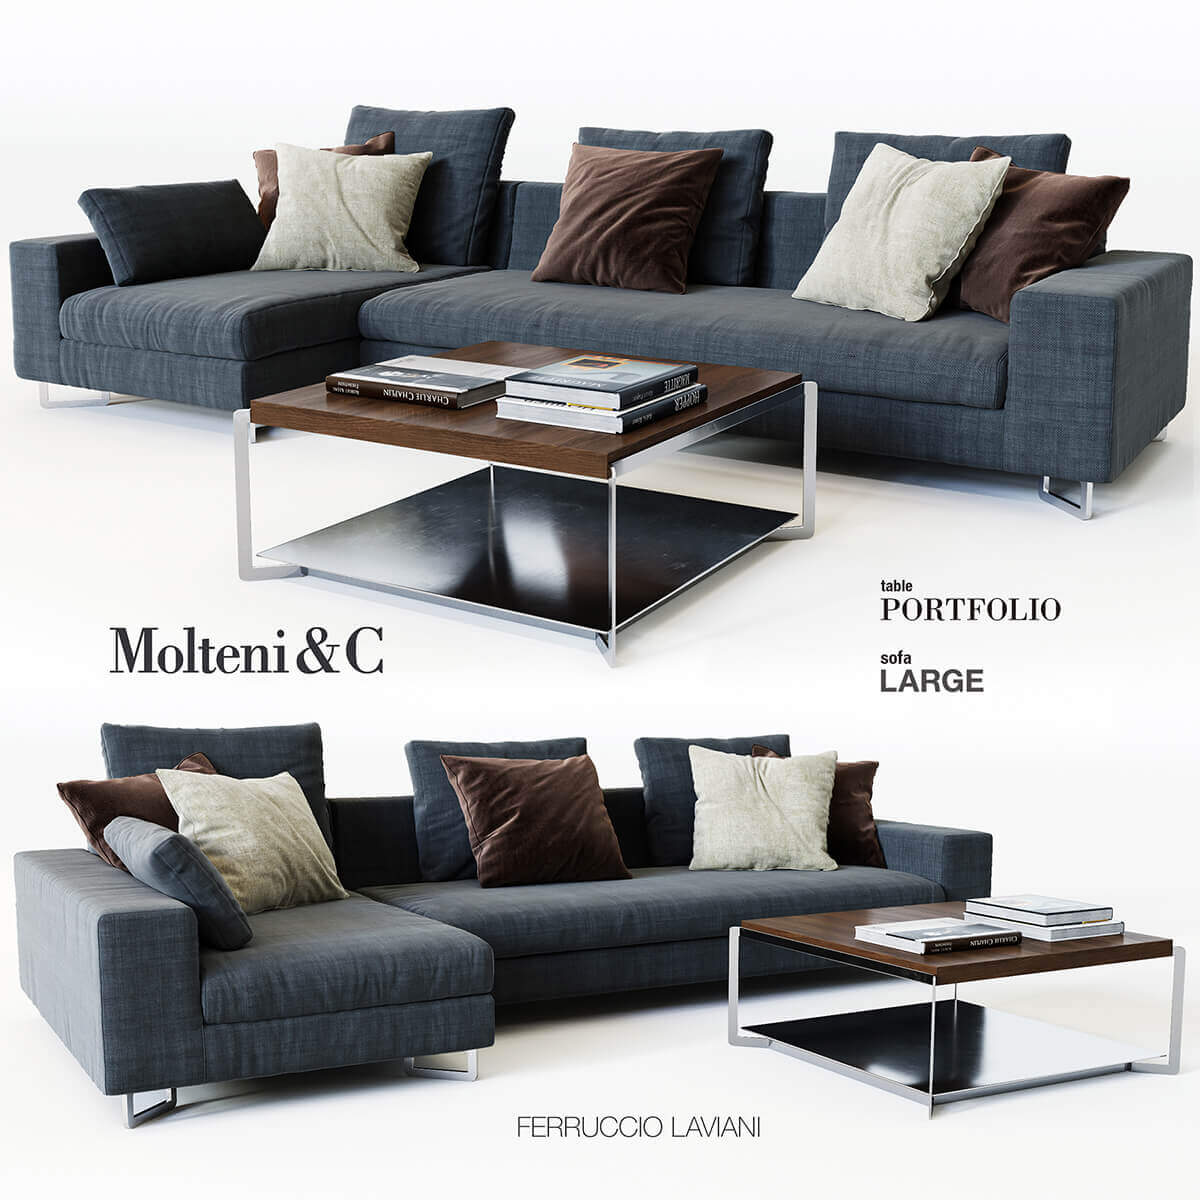 molteni c sofa 3d model for download. Black Bedroom Furniture Sets. Home Design Ideas